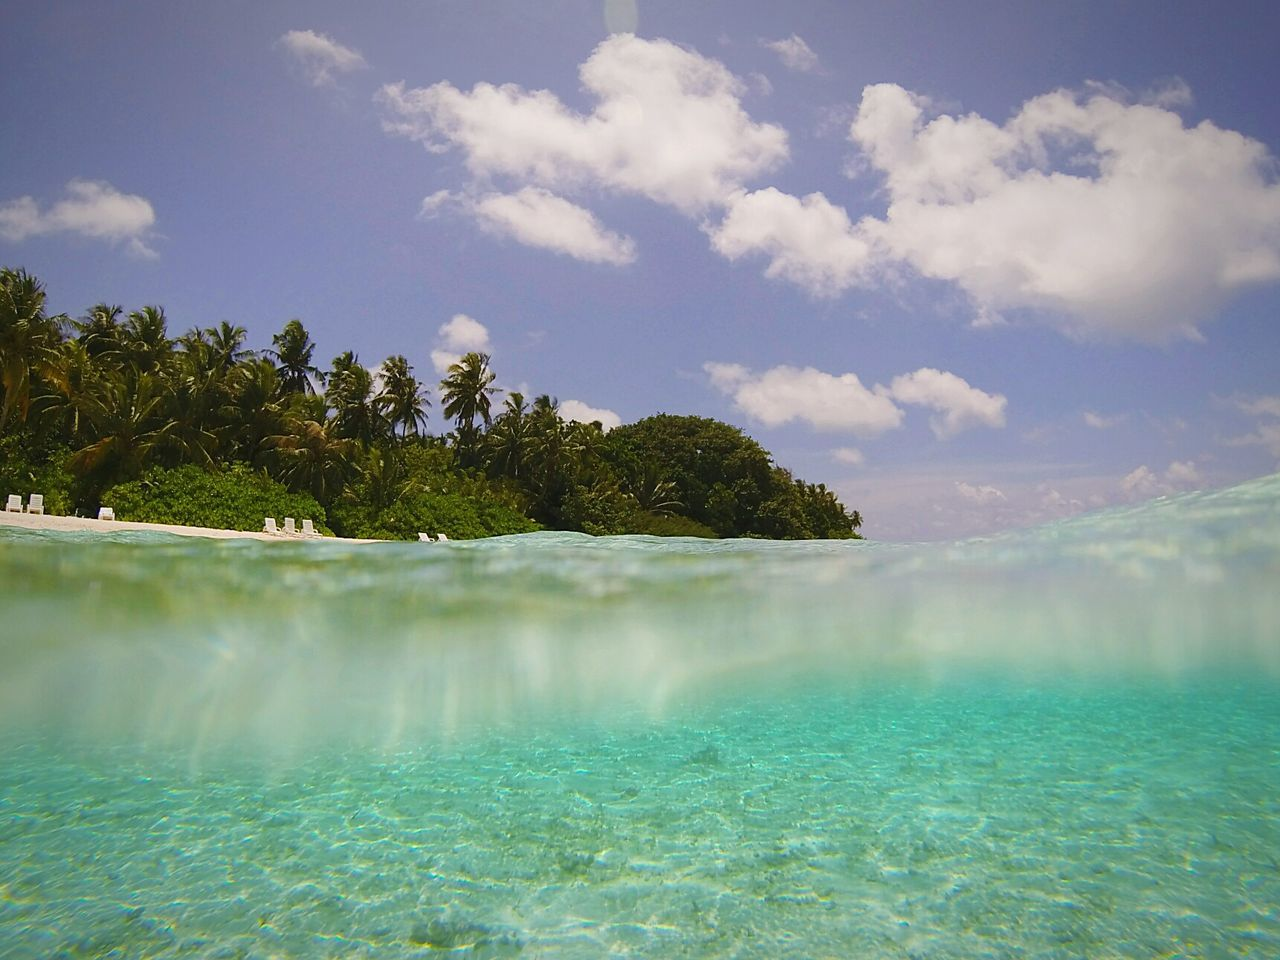 Holidays ☀ Maldives Biyadhooislandresort Inandout Waterscape Watersurface Beauty In Nature Cloud - Sky Landscape Sunnyday Igworldclub Goprohero3 Goprophotography Goprolife Goprowater Goproblackedition Goprouniverse BeautifulShot Relax Love ♥ IGDaily Picoftheday No People Standing Water Scenics